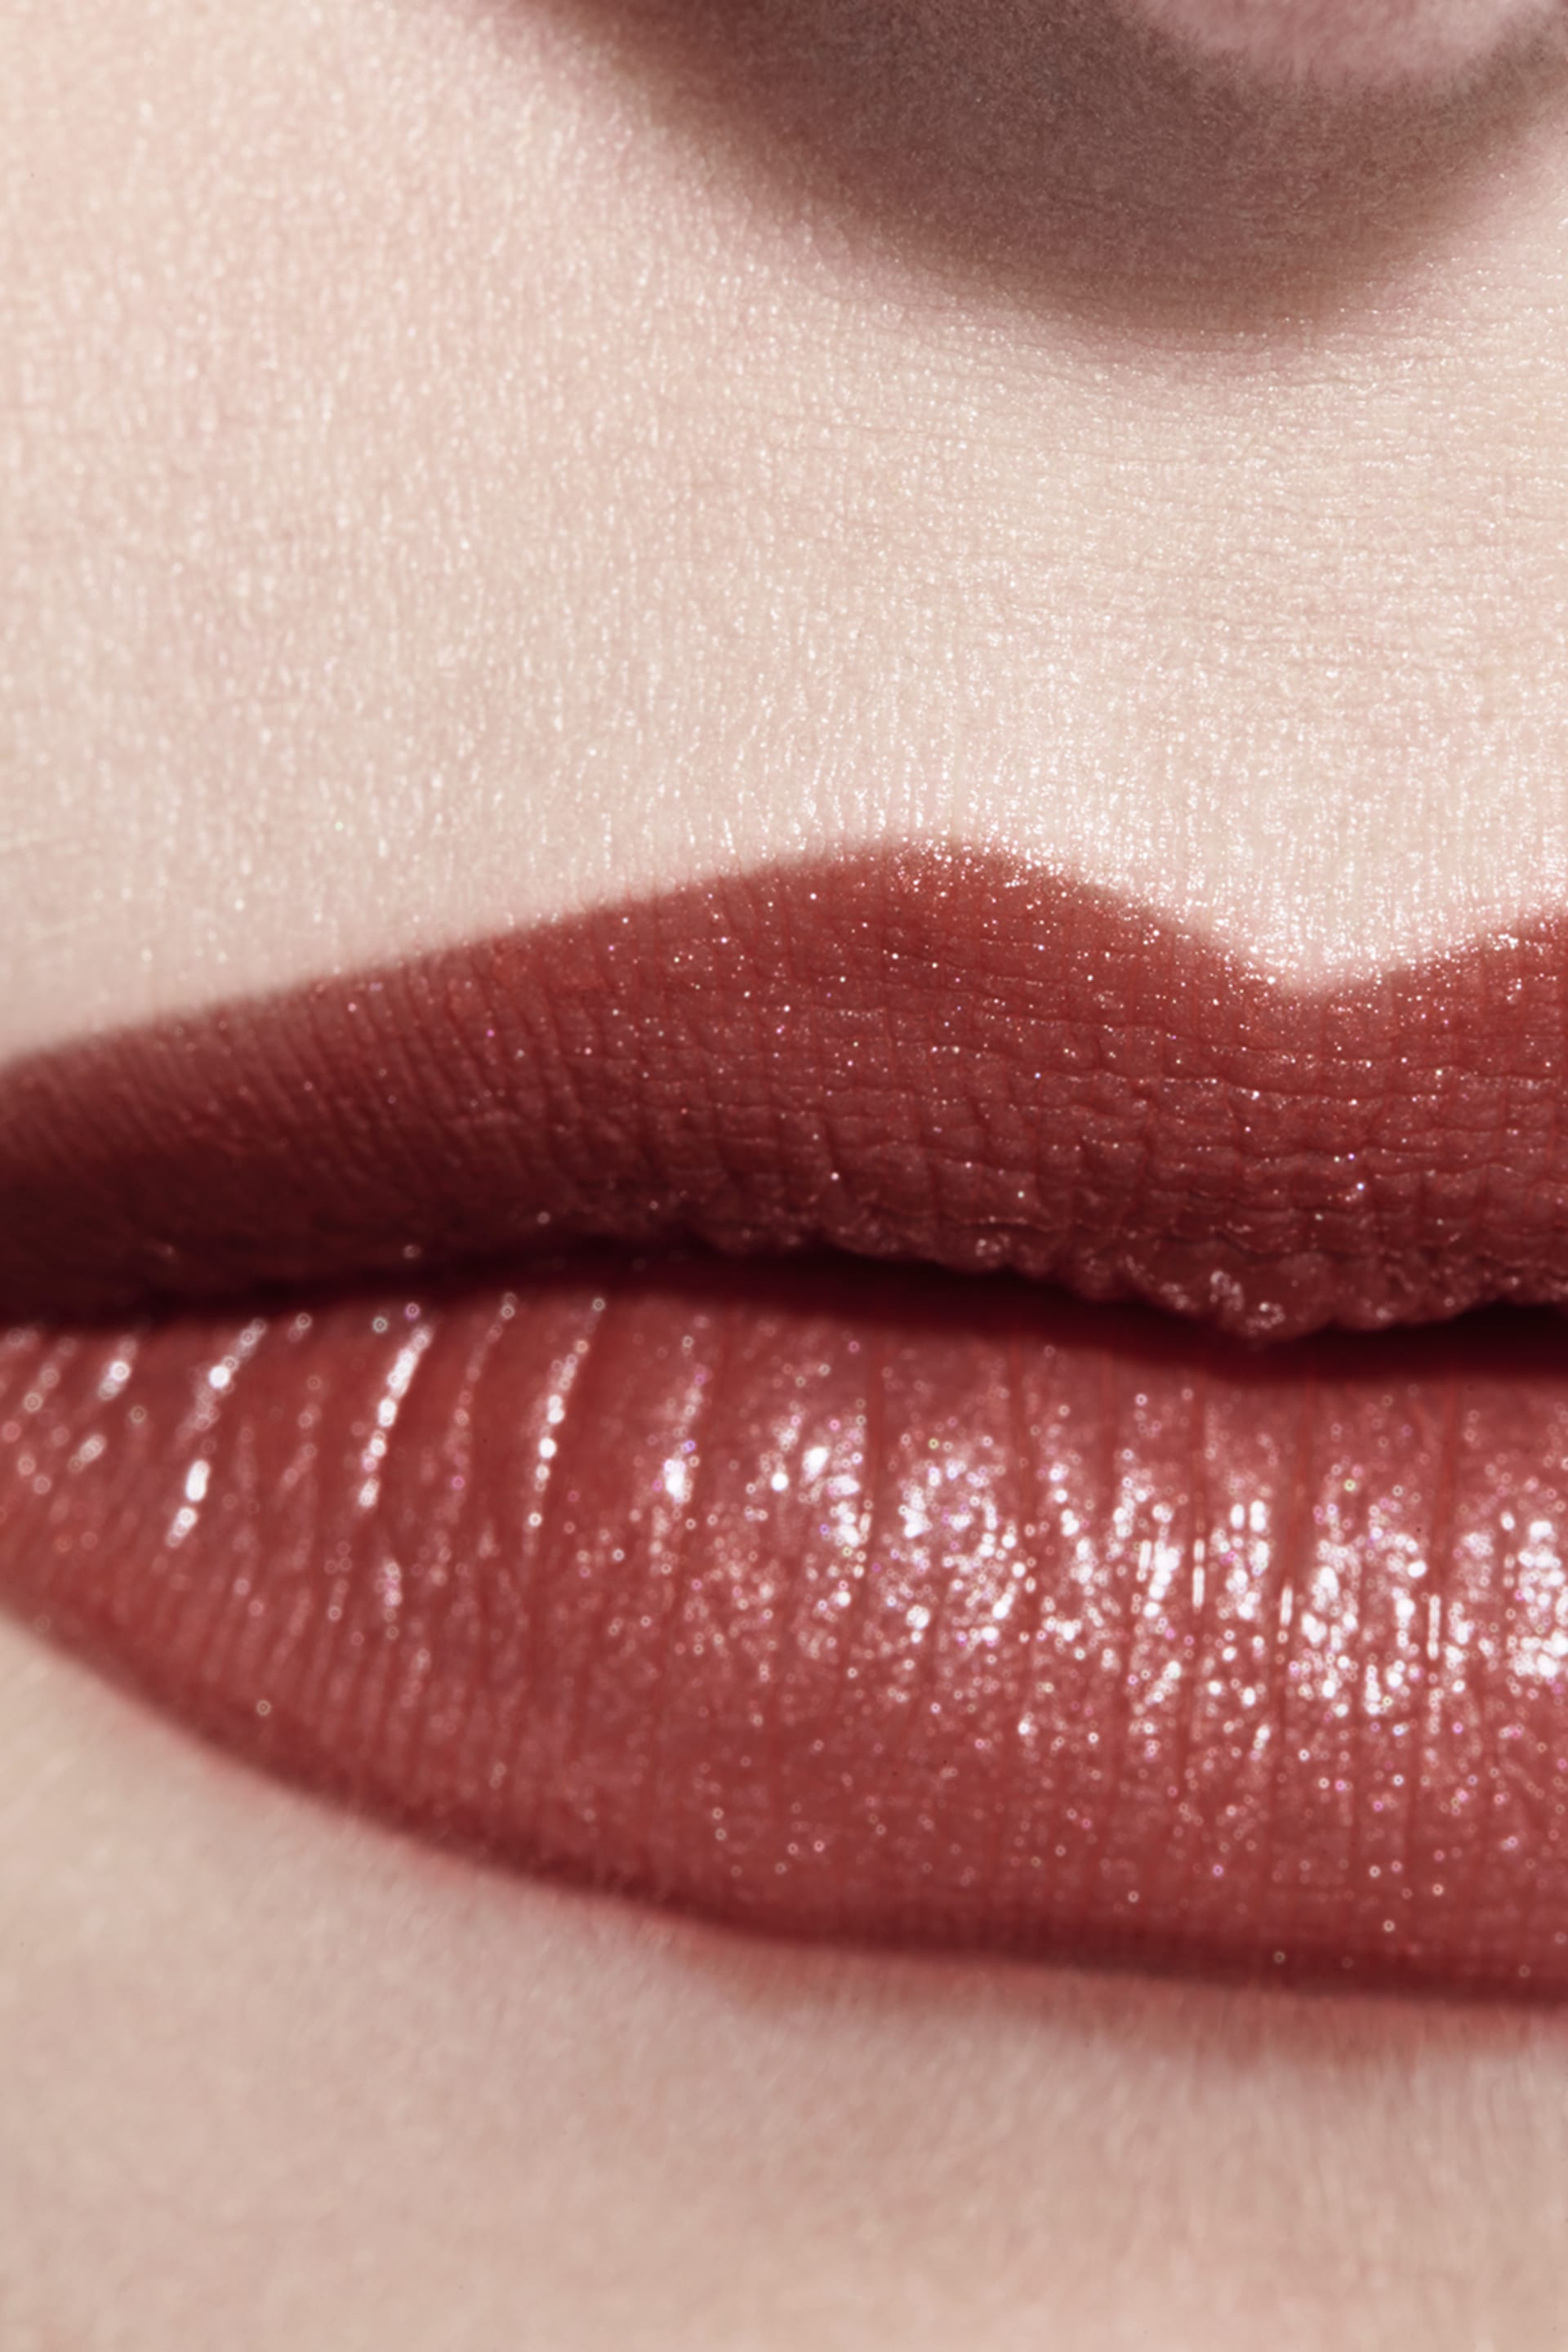 Application makeup visual 3 - ROUGE COCO 406 - ANTOINETTE